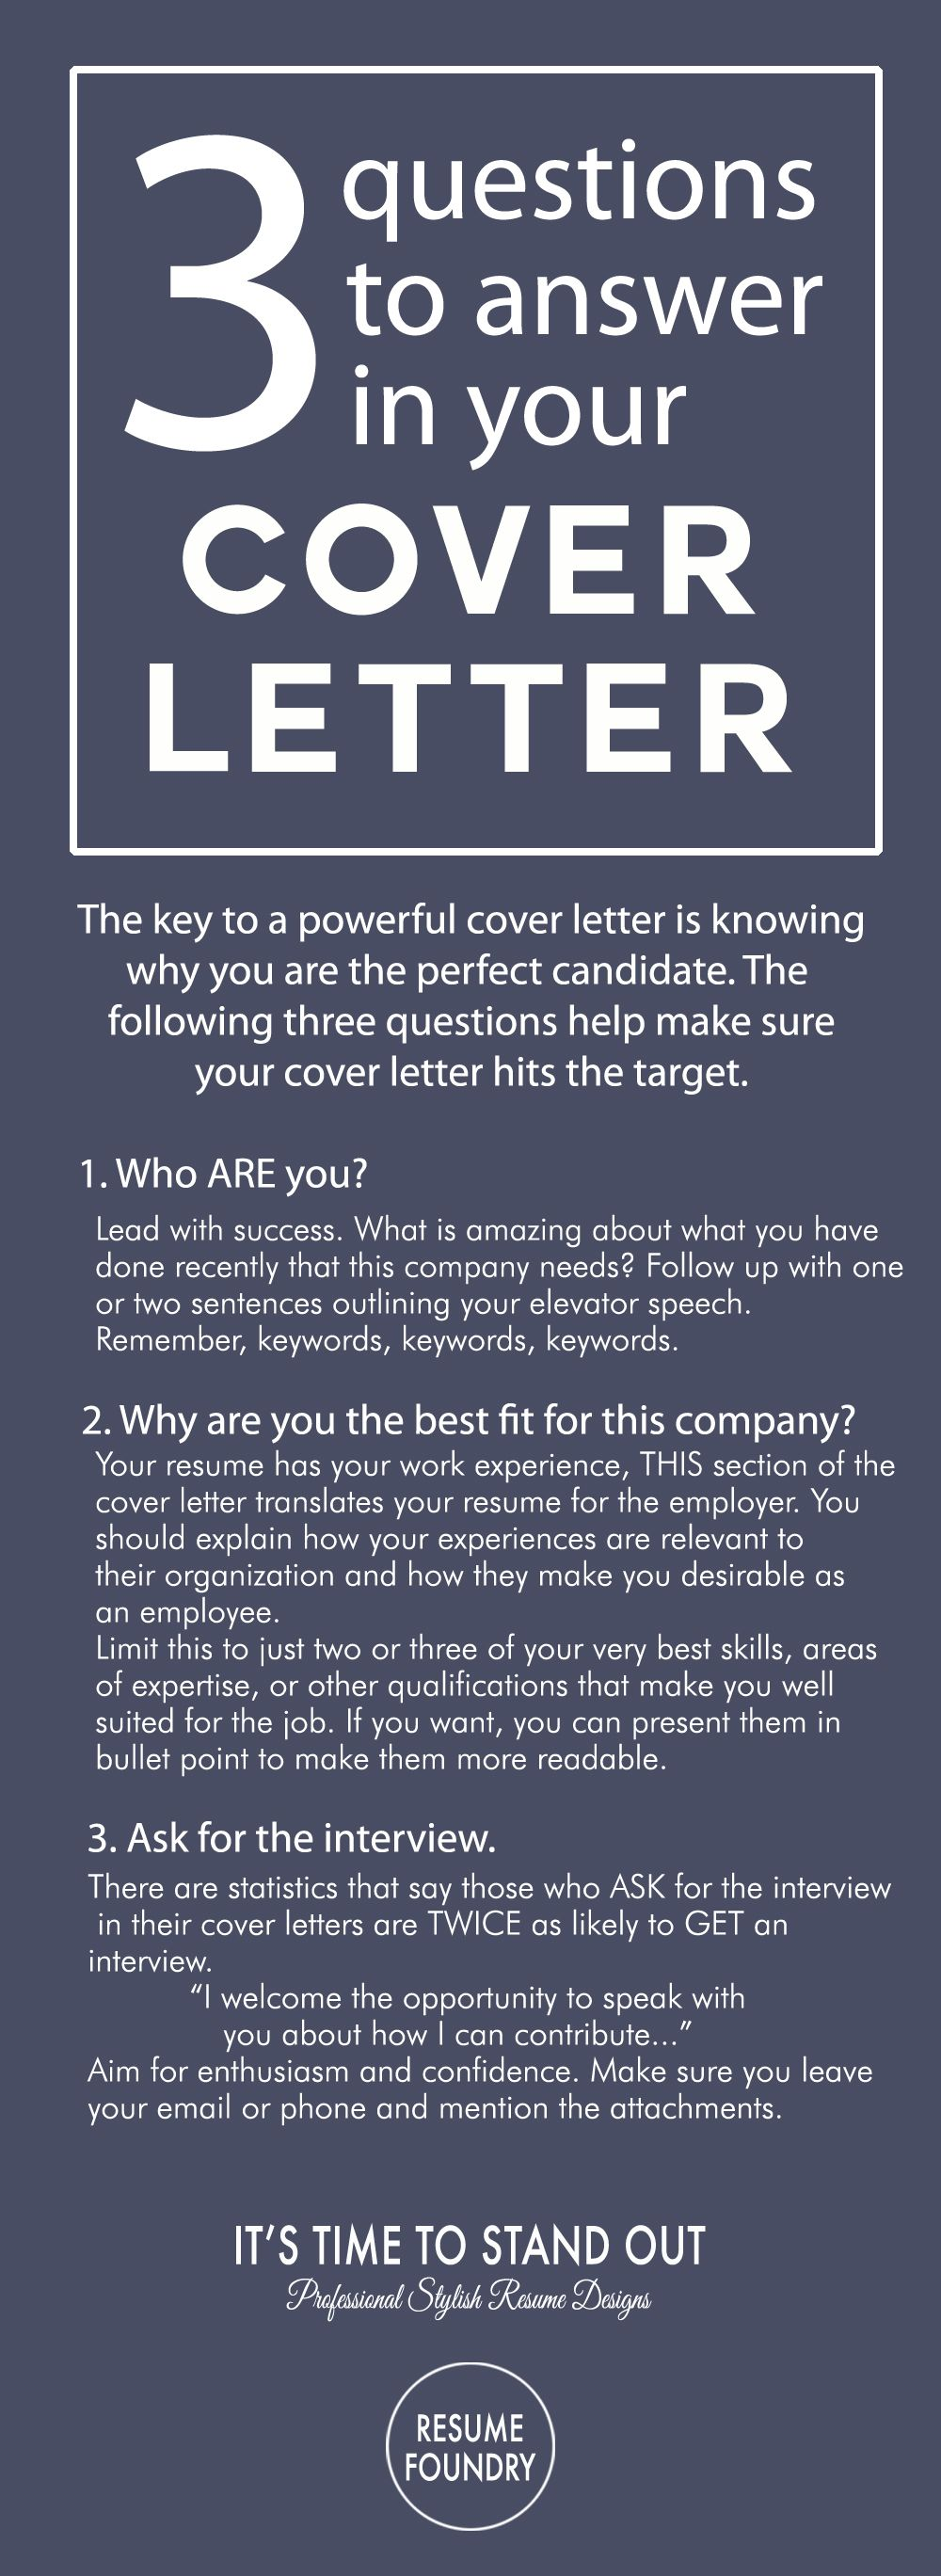 Beautiful Cover Letter Outline, Cover Letter Tips